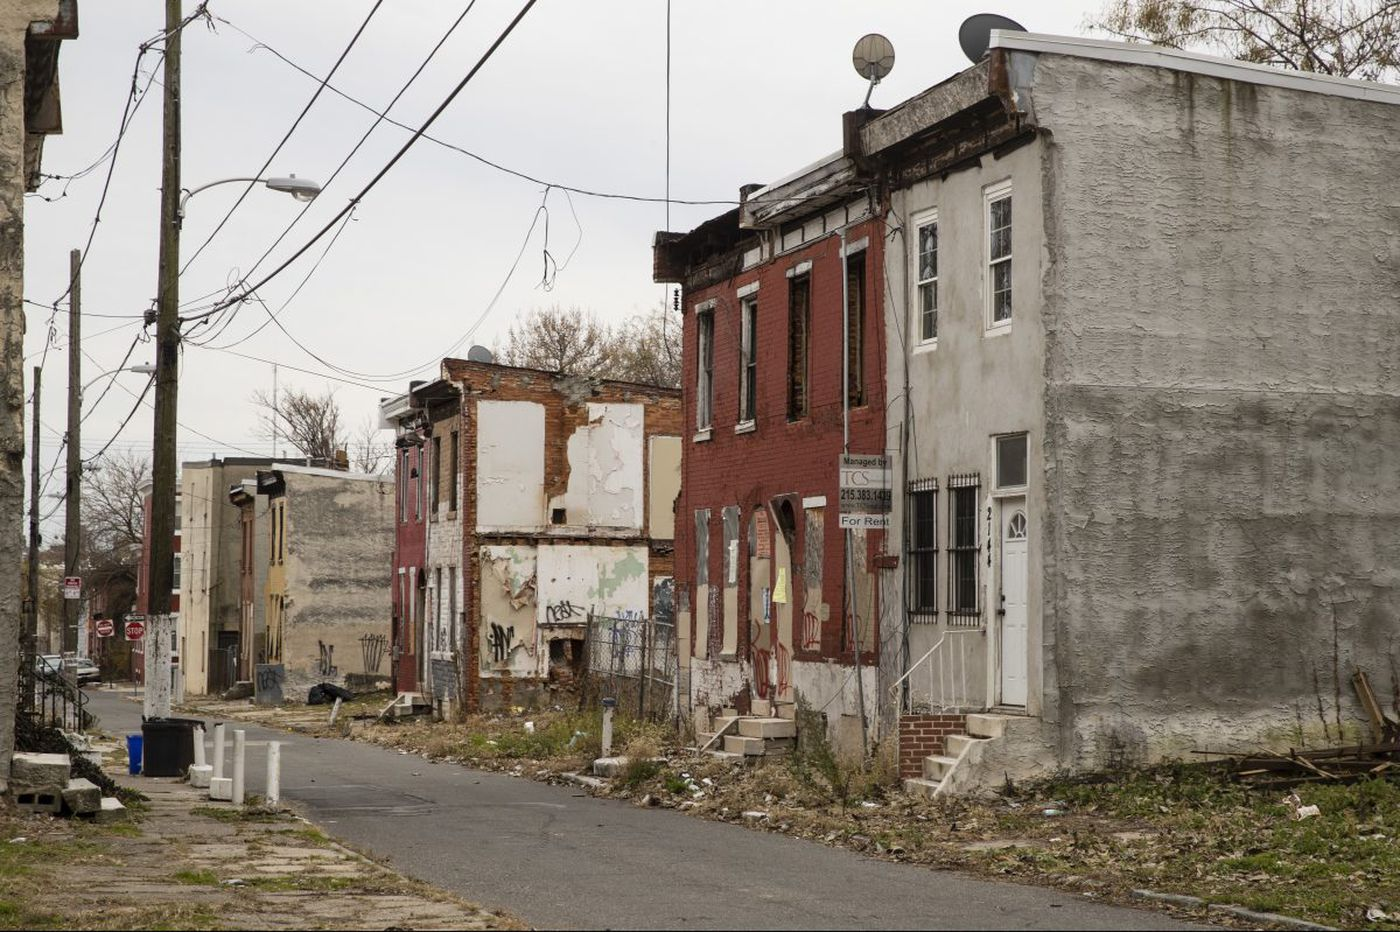 Commentary Trauma From Adverse >> End The Cycles Of Trauma And Poverty For Philly Families Perspective